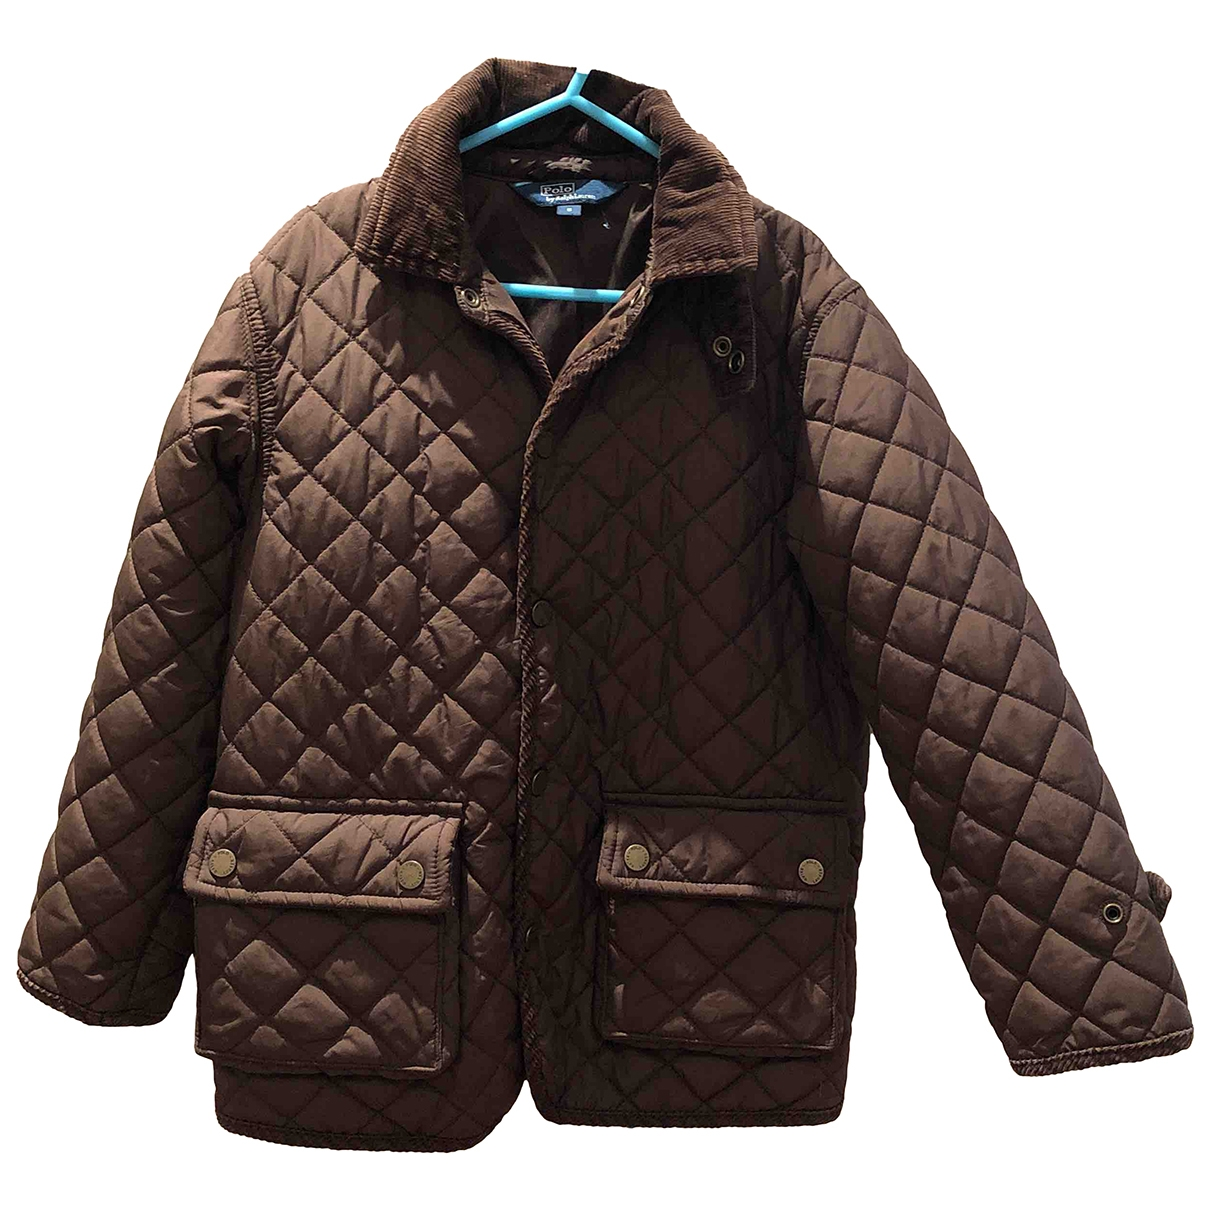 Polo Ralph Lauren \N Brown jacket & coat for Kids 5 years - until 42.5 inches UK